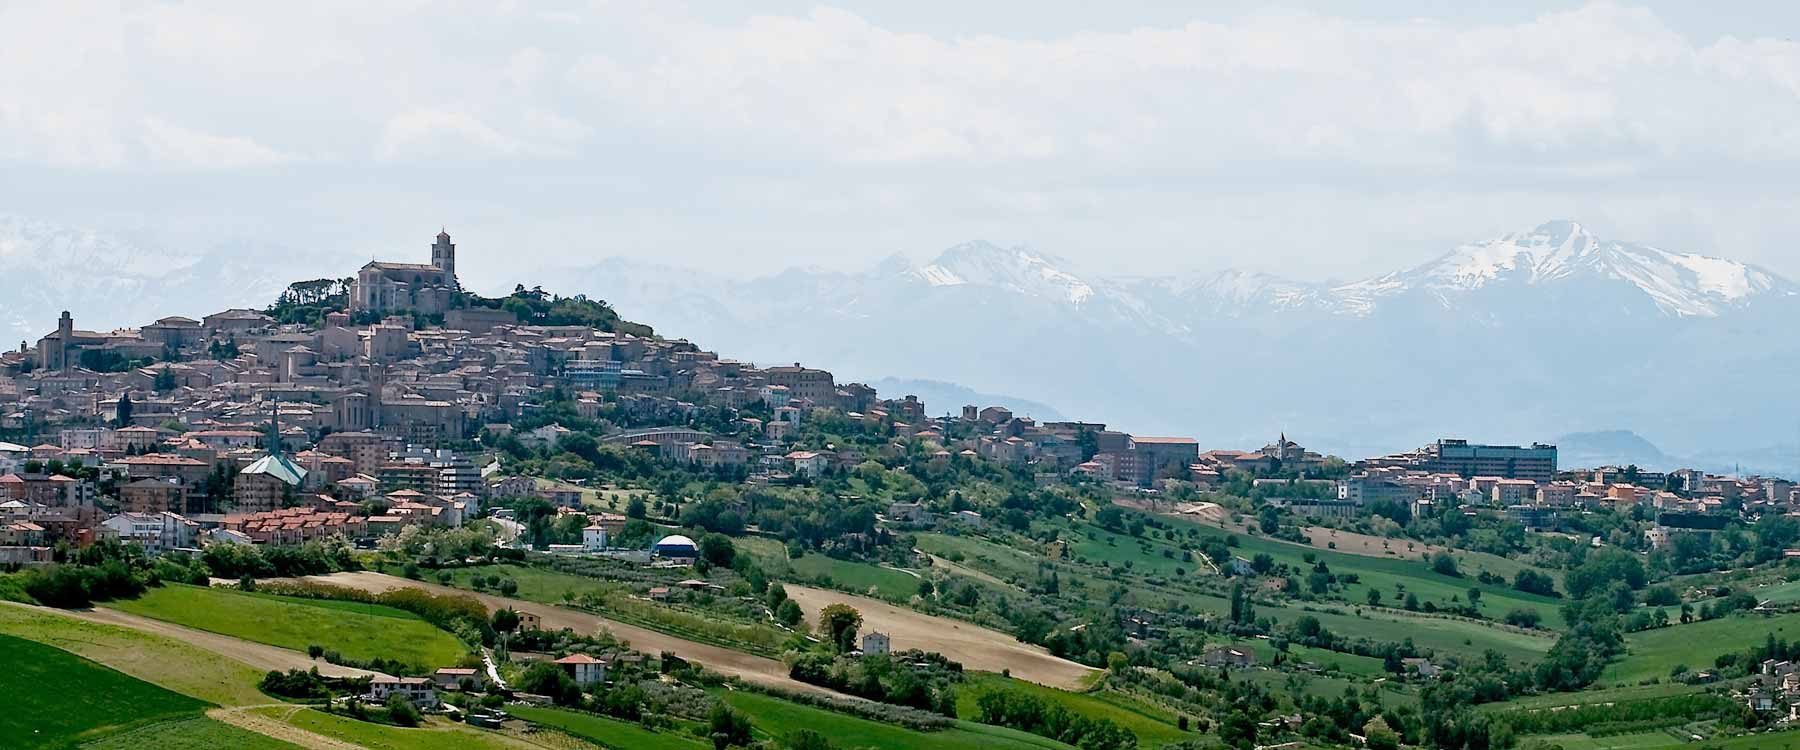 Fermo and its surroundings